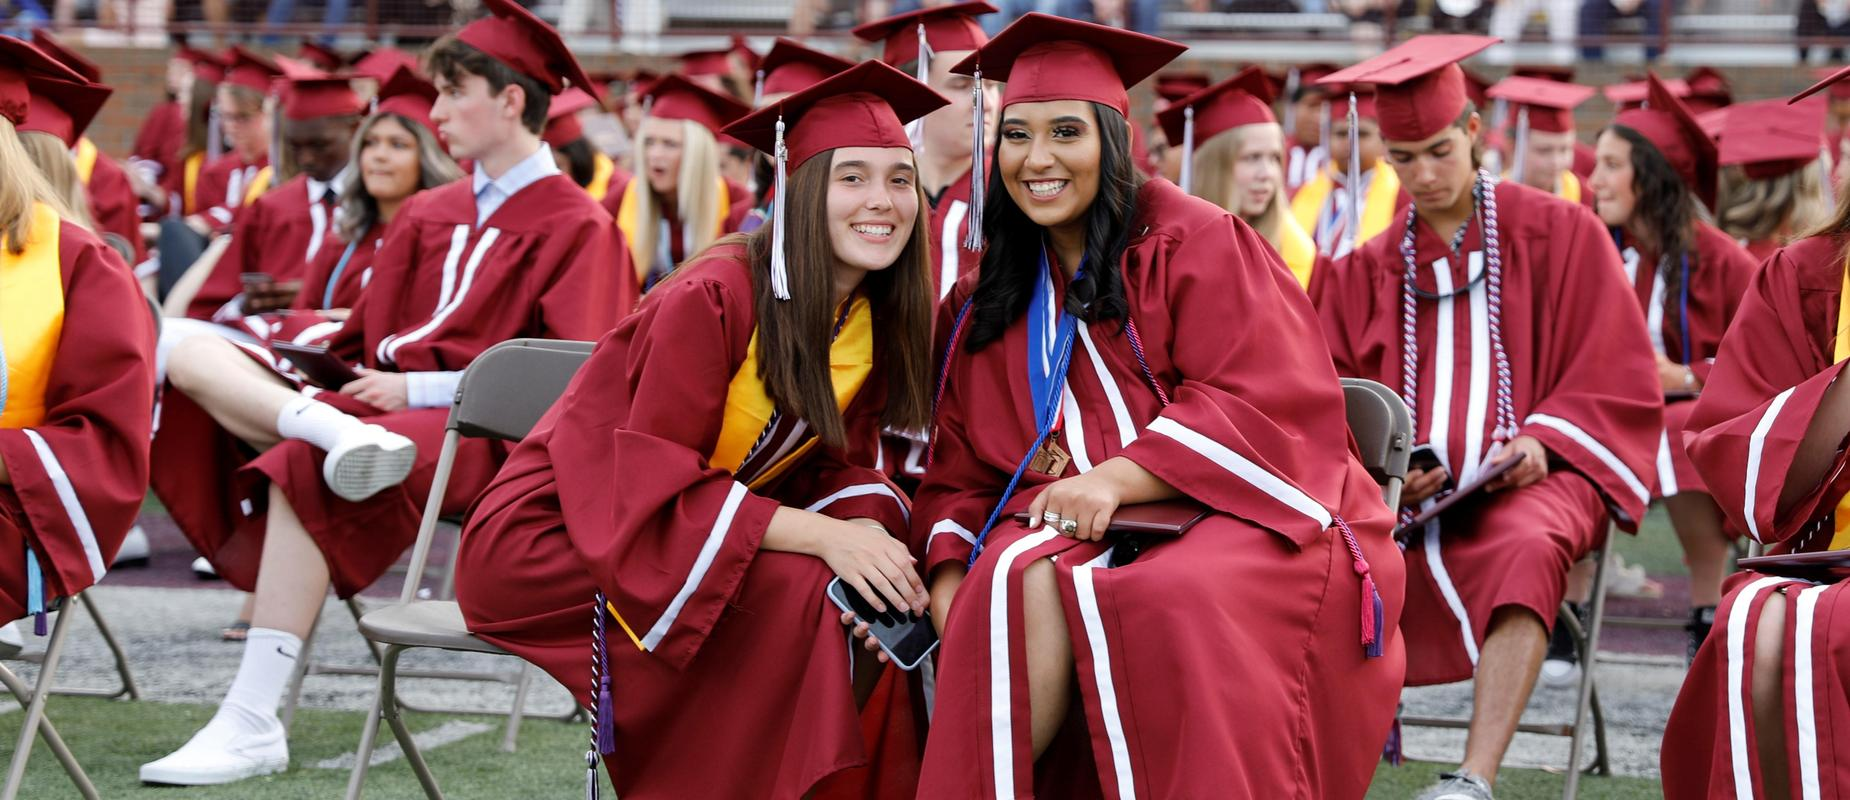 two girls in maroon cap and gown sit in front row smiling at graduation outdoors